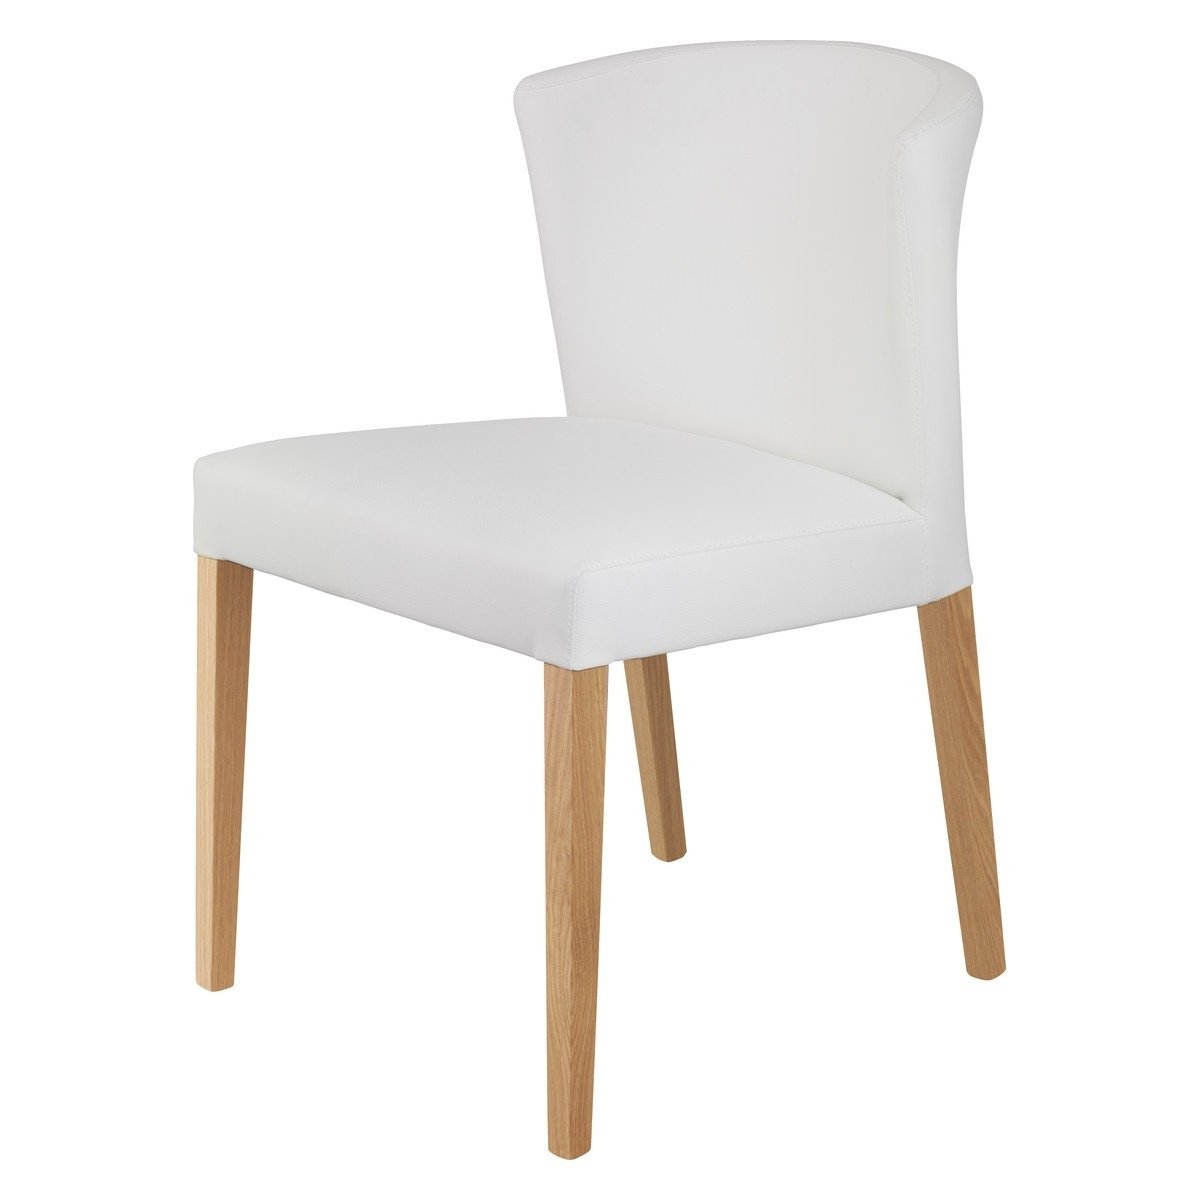 Buy Now At Regarding White Dining Chairs (Gallery 4 of 25)